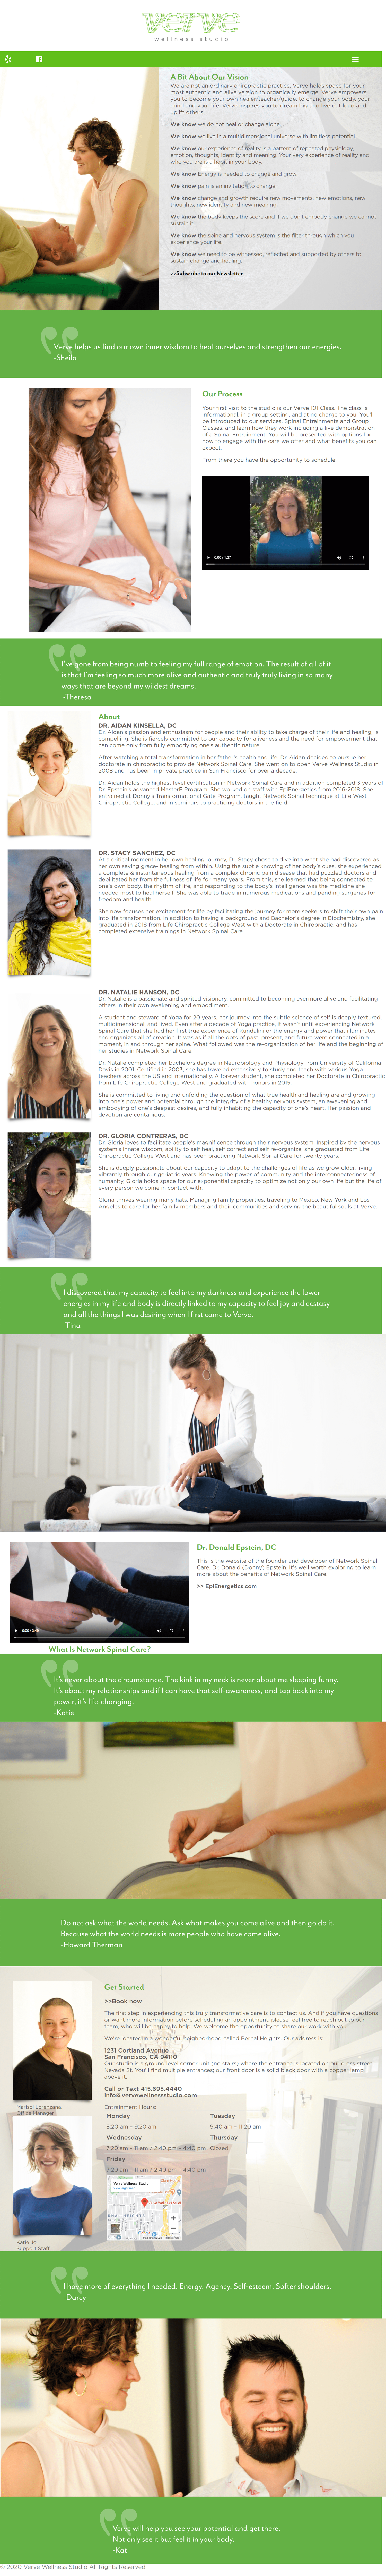 Verve Wellness Studio – A new kind of Chiropractic Care_ - vervewellnessstudio.com